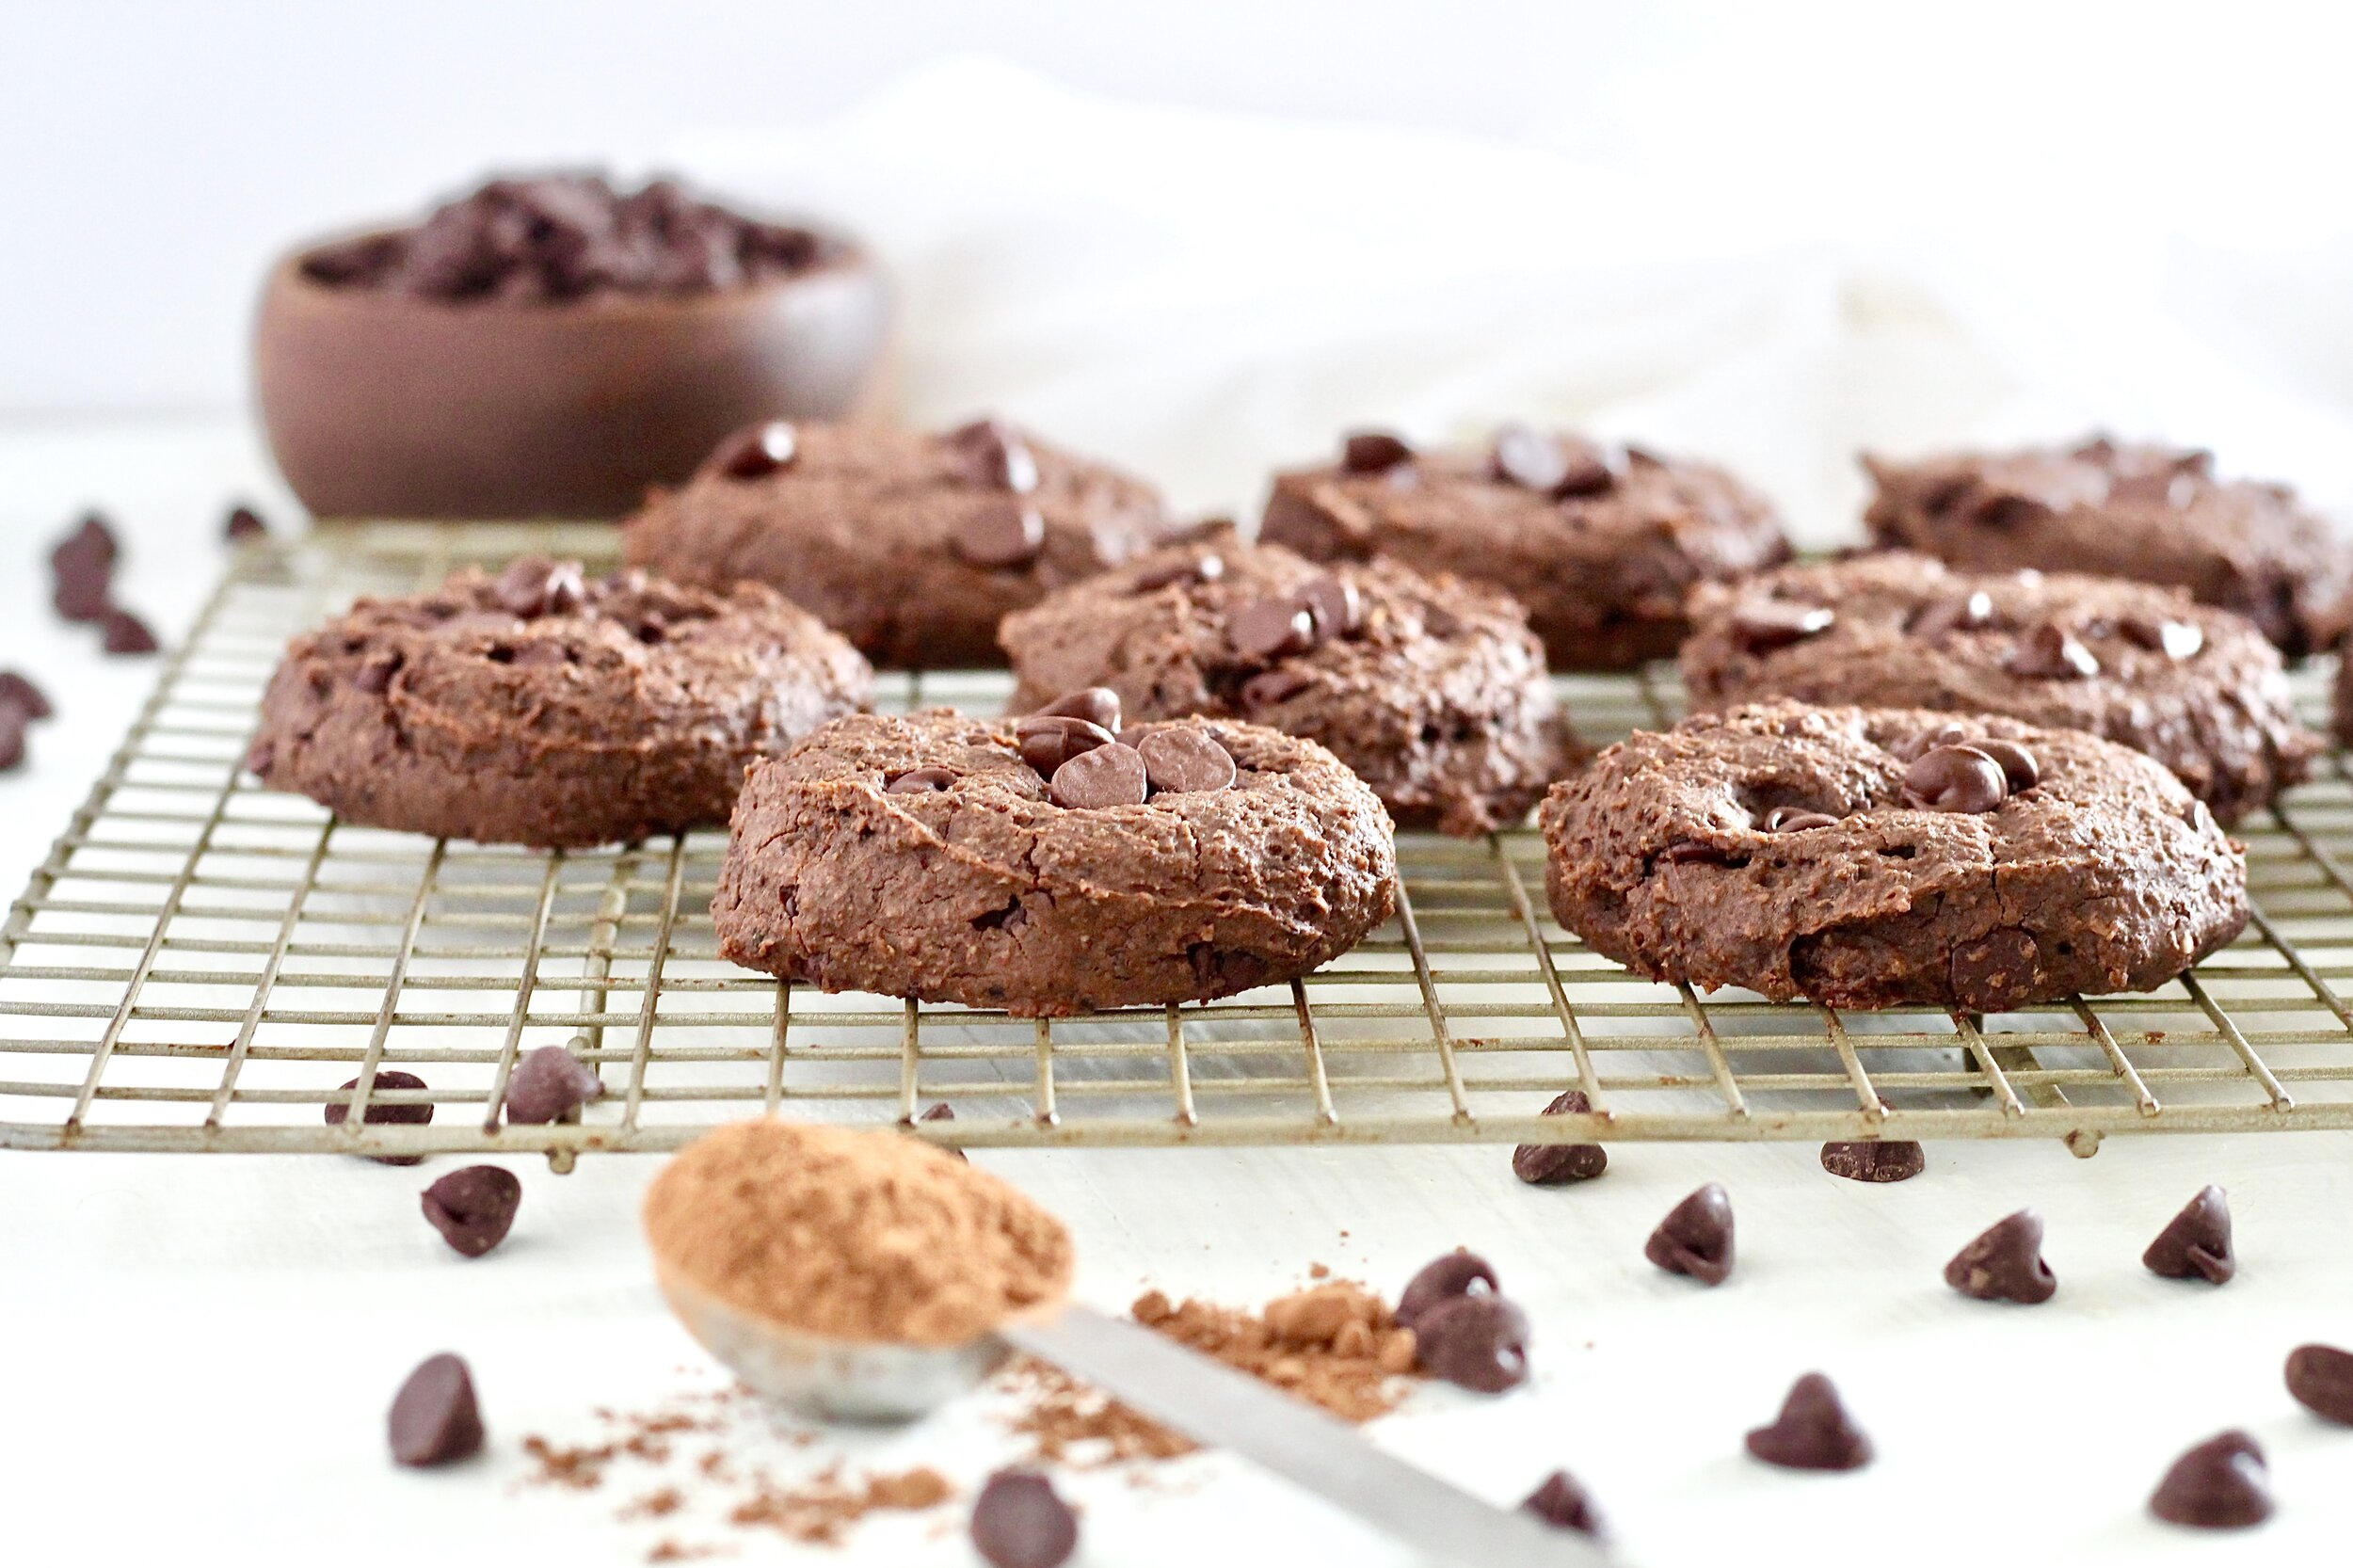 Double Chocolate Fudge Breakfast Cookies with chocolate chips and cocoa powder in teaspoon